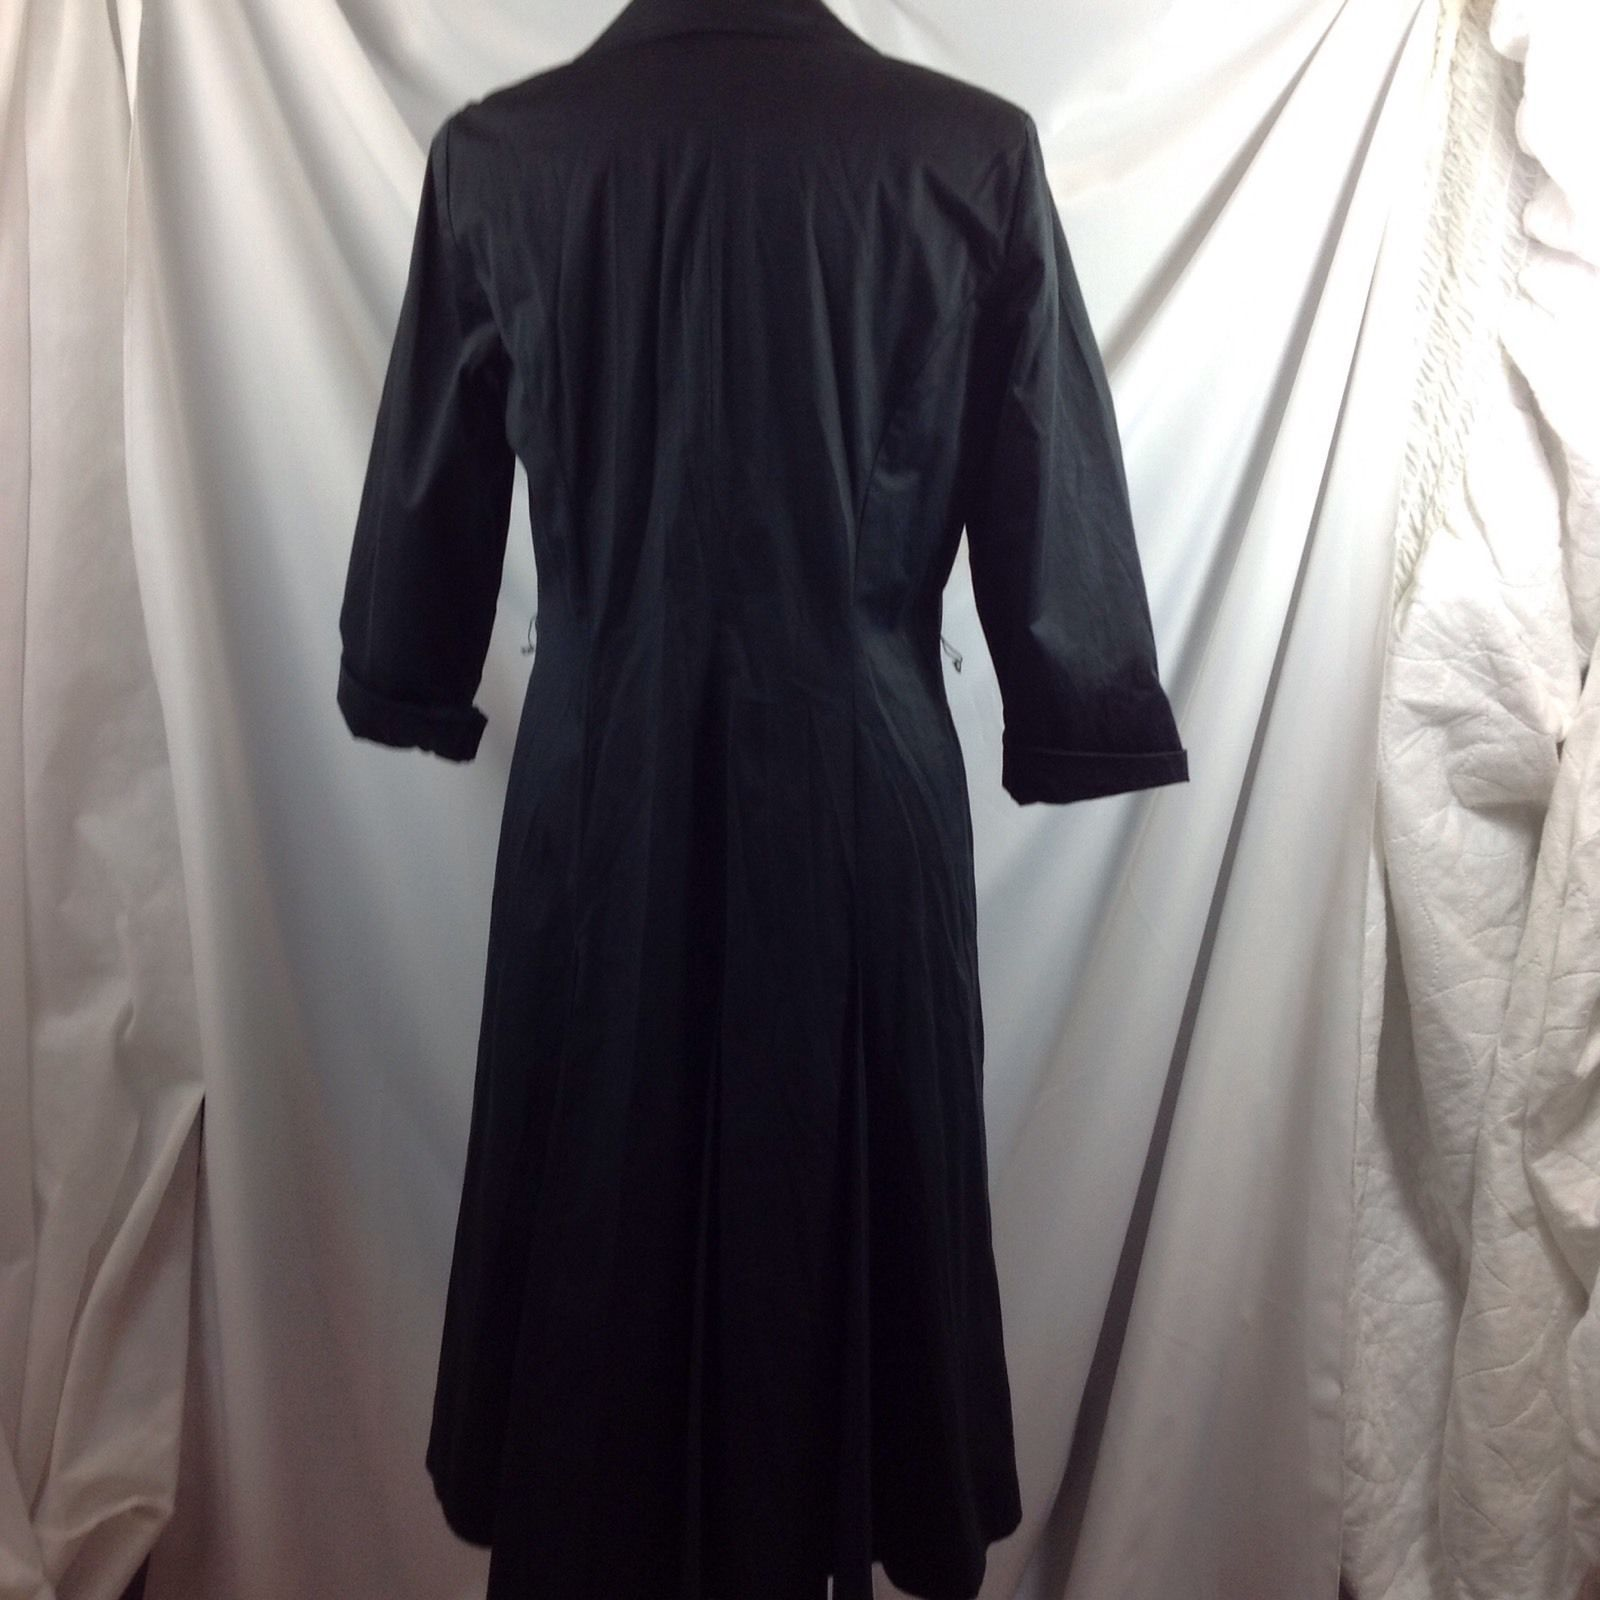 Ellen Tracy Black Cotton Trench Dress Collared Button Front 3/4 Sleeve 10